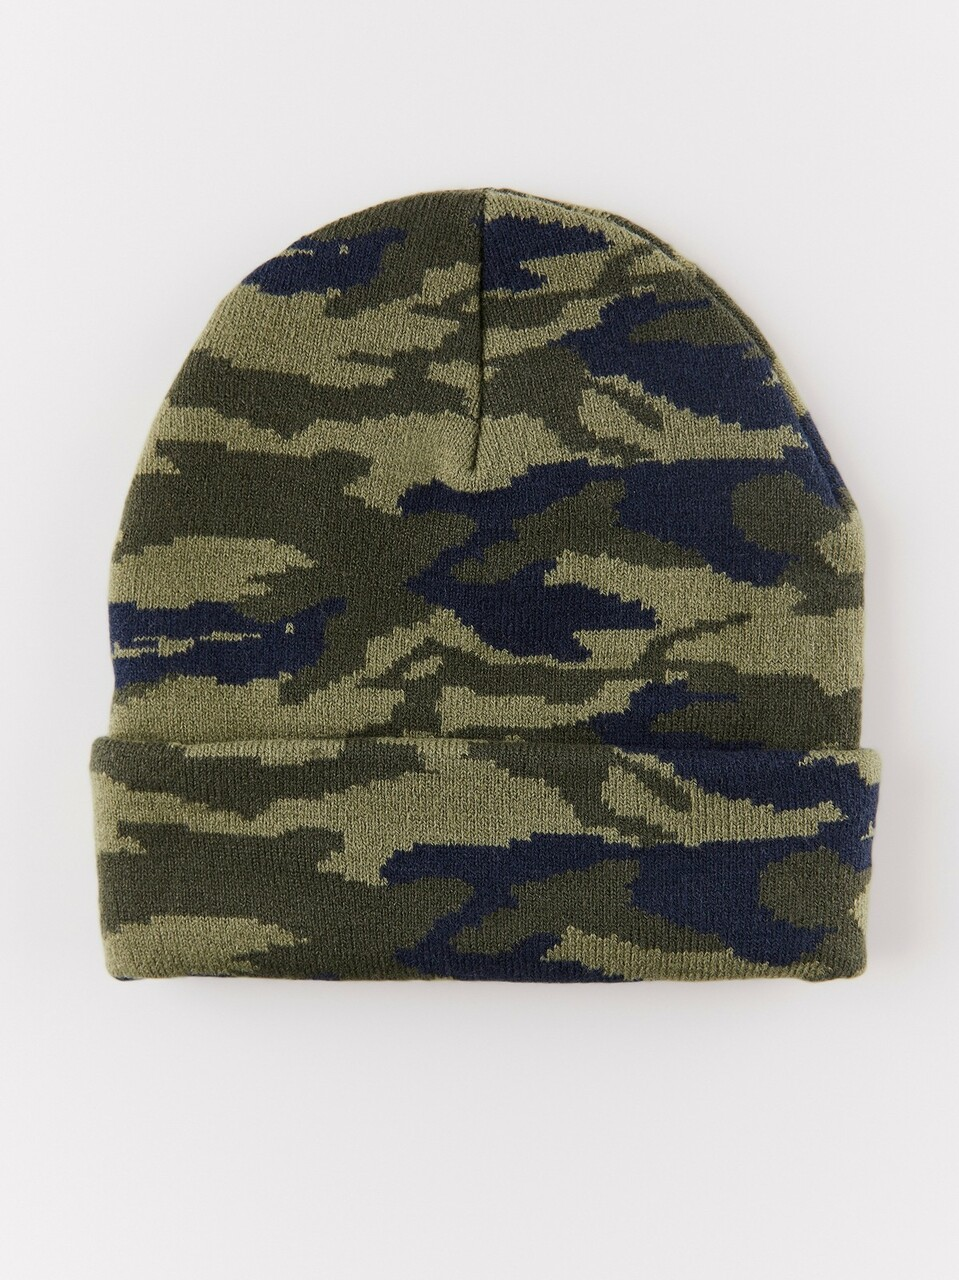 Knitted cap with camouflage pattern